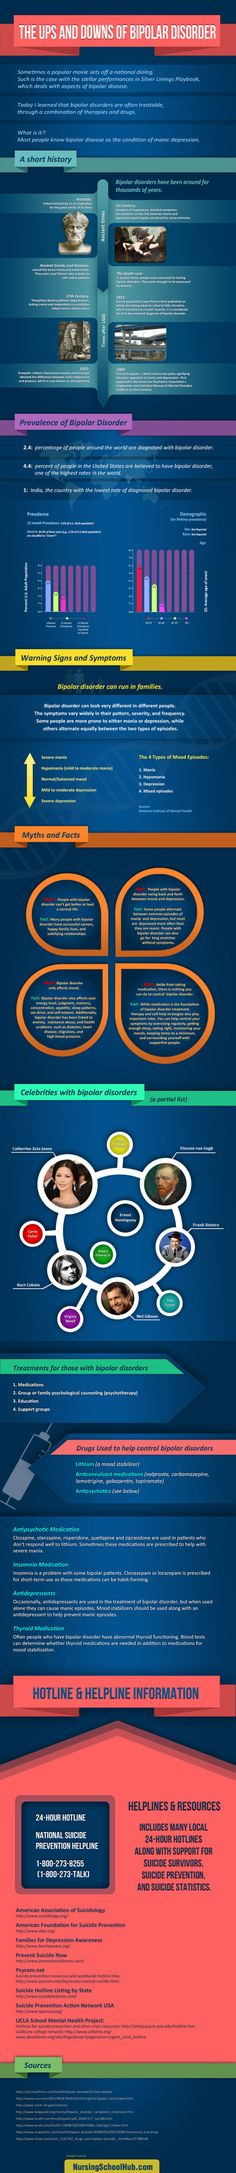 The ups and downs of bipolar disorder #infographic